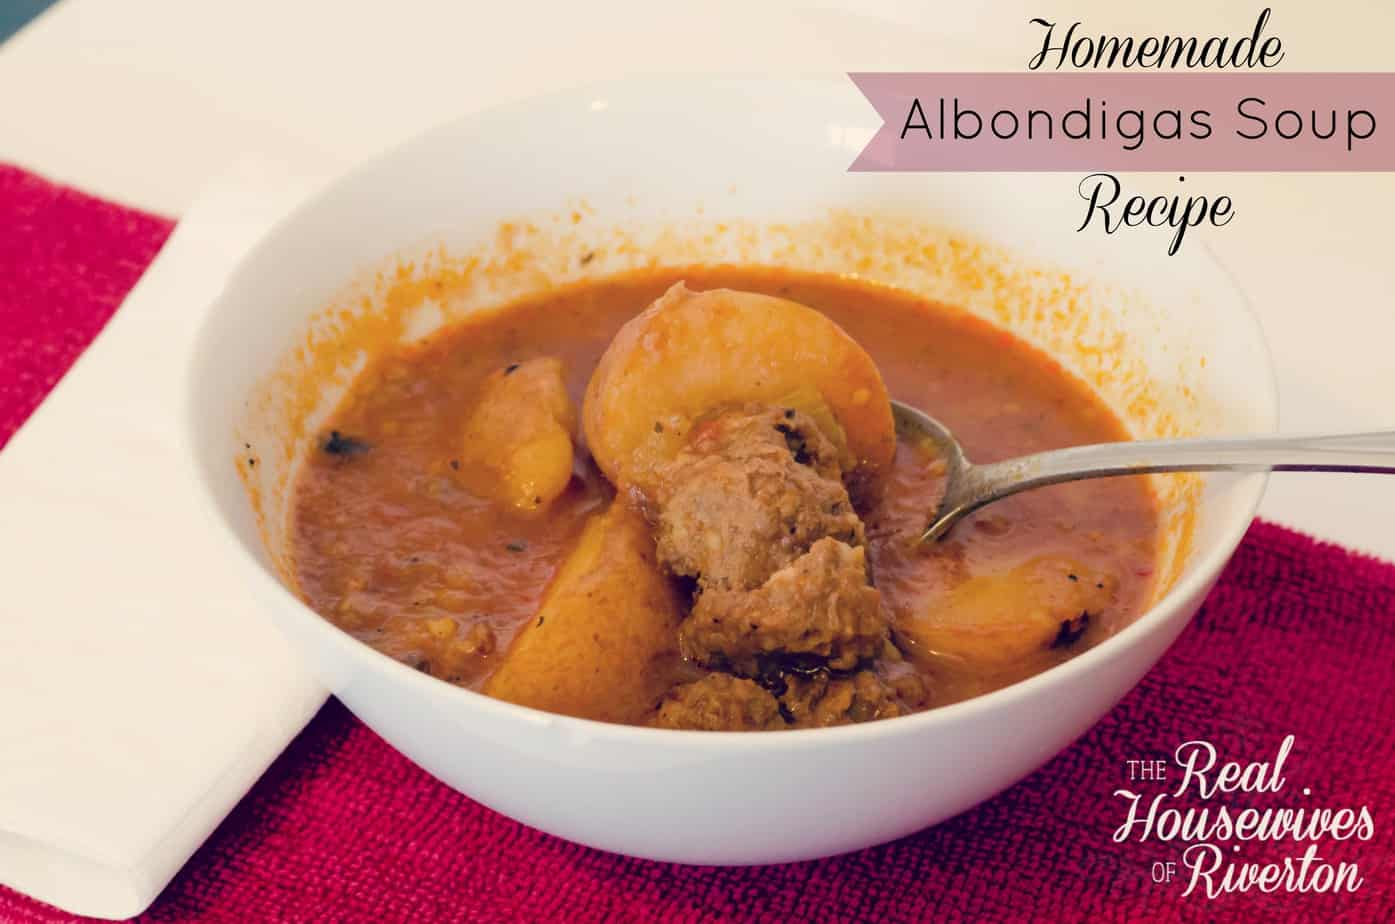 Homemade Albondigas Soup Recipe